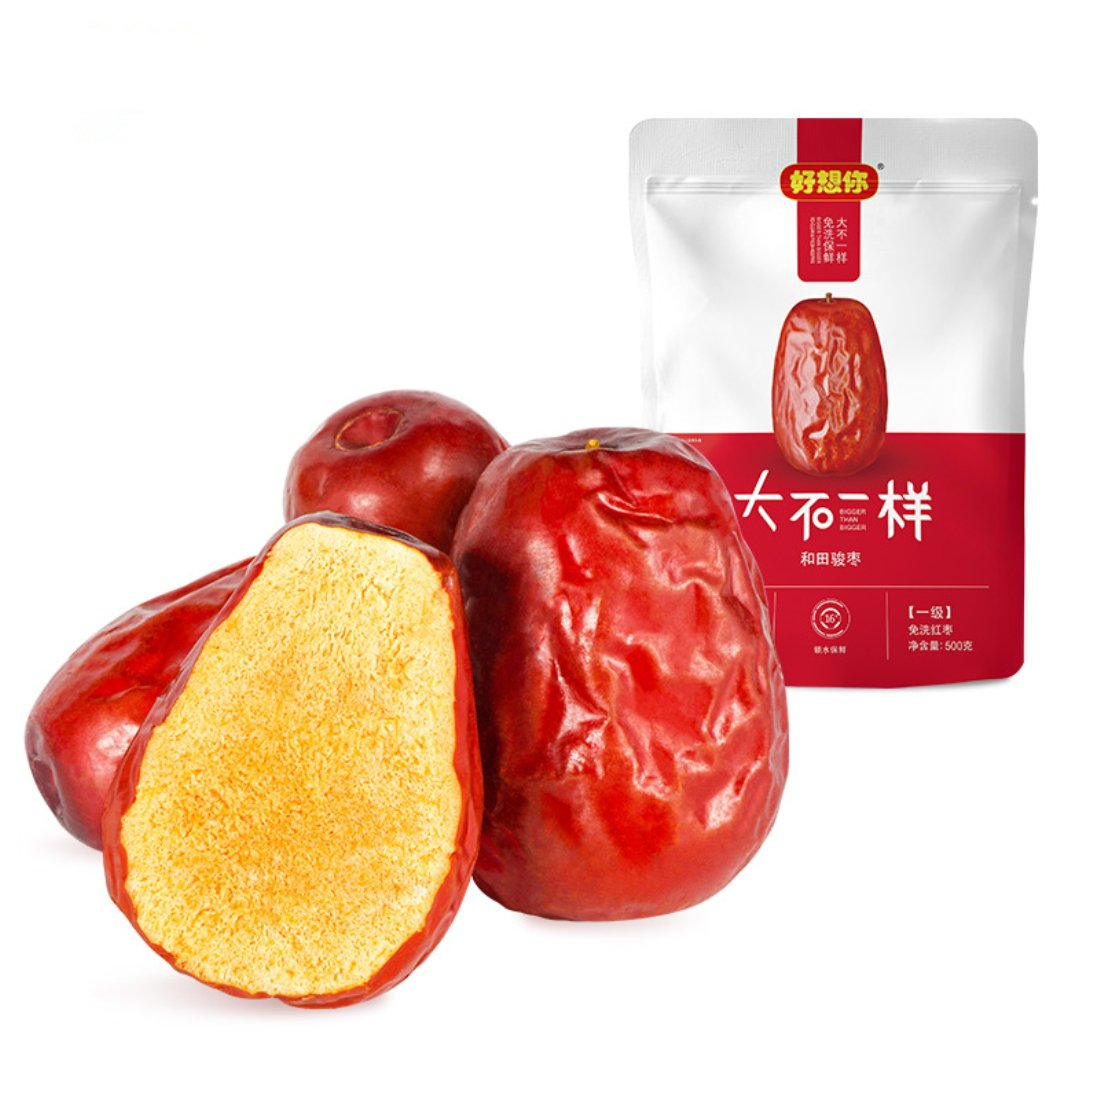 Xinjiang Specialty: Haoxiangni Super Grade Chinese Red Dates Natural Jujube As Office Snacks or Gifts 500g/17.6oz/1.1lb